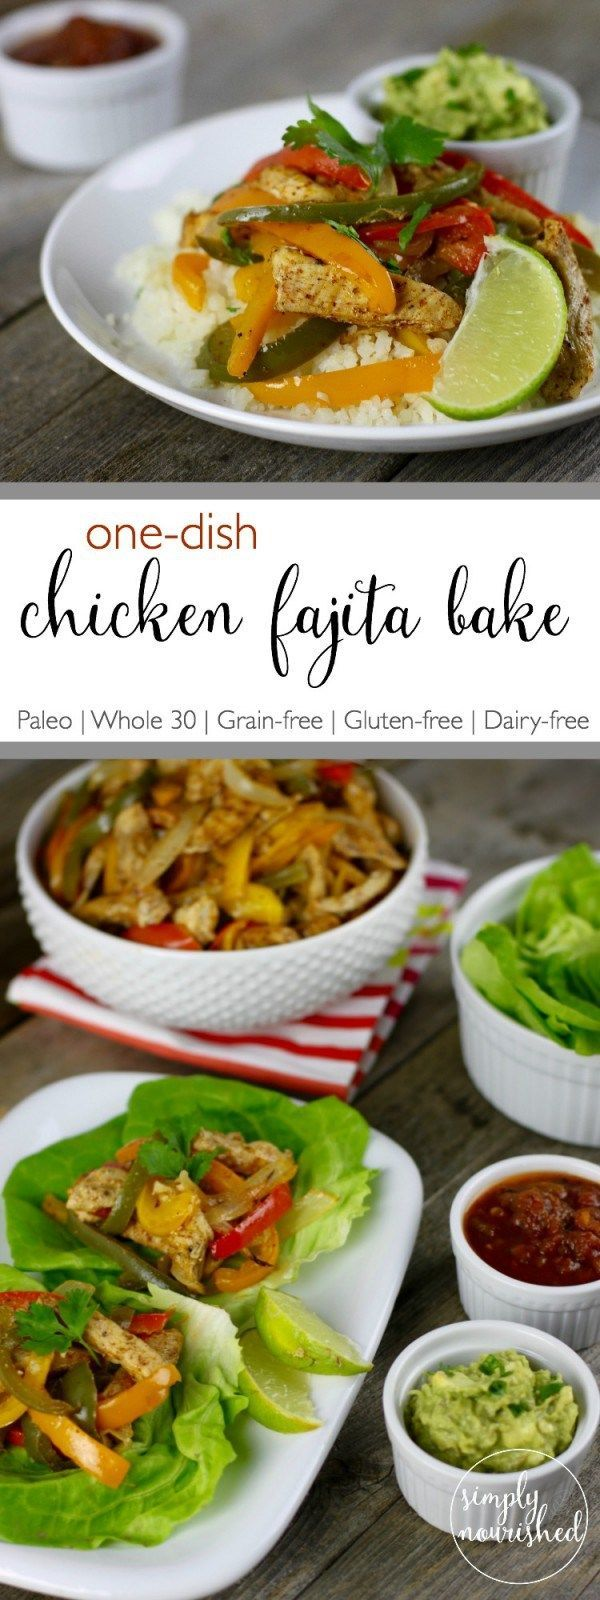 Chicken Fajita Bake | one dish meals | paleo dinner recipe | whole30 dinner recipe | gluten-free dinner recipe | dairy-free dinner recipe | healthy chicken fajita recipe | easy chicken dinner | healthy chicken dinner || The Real Food Dietitians #whole30 #whole30dinner #fajitachicken